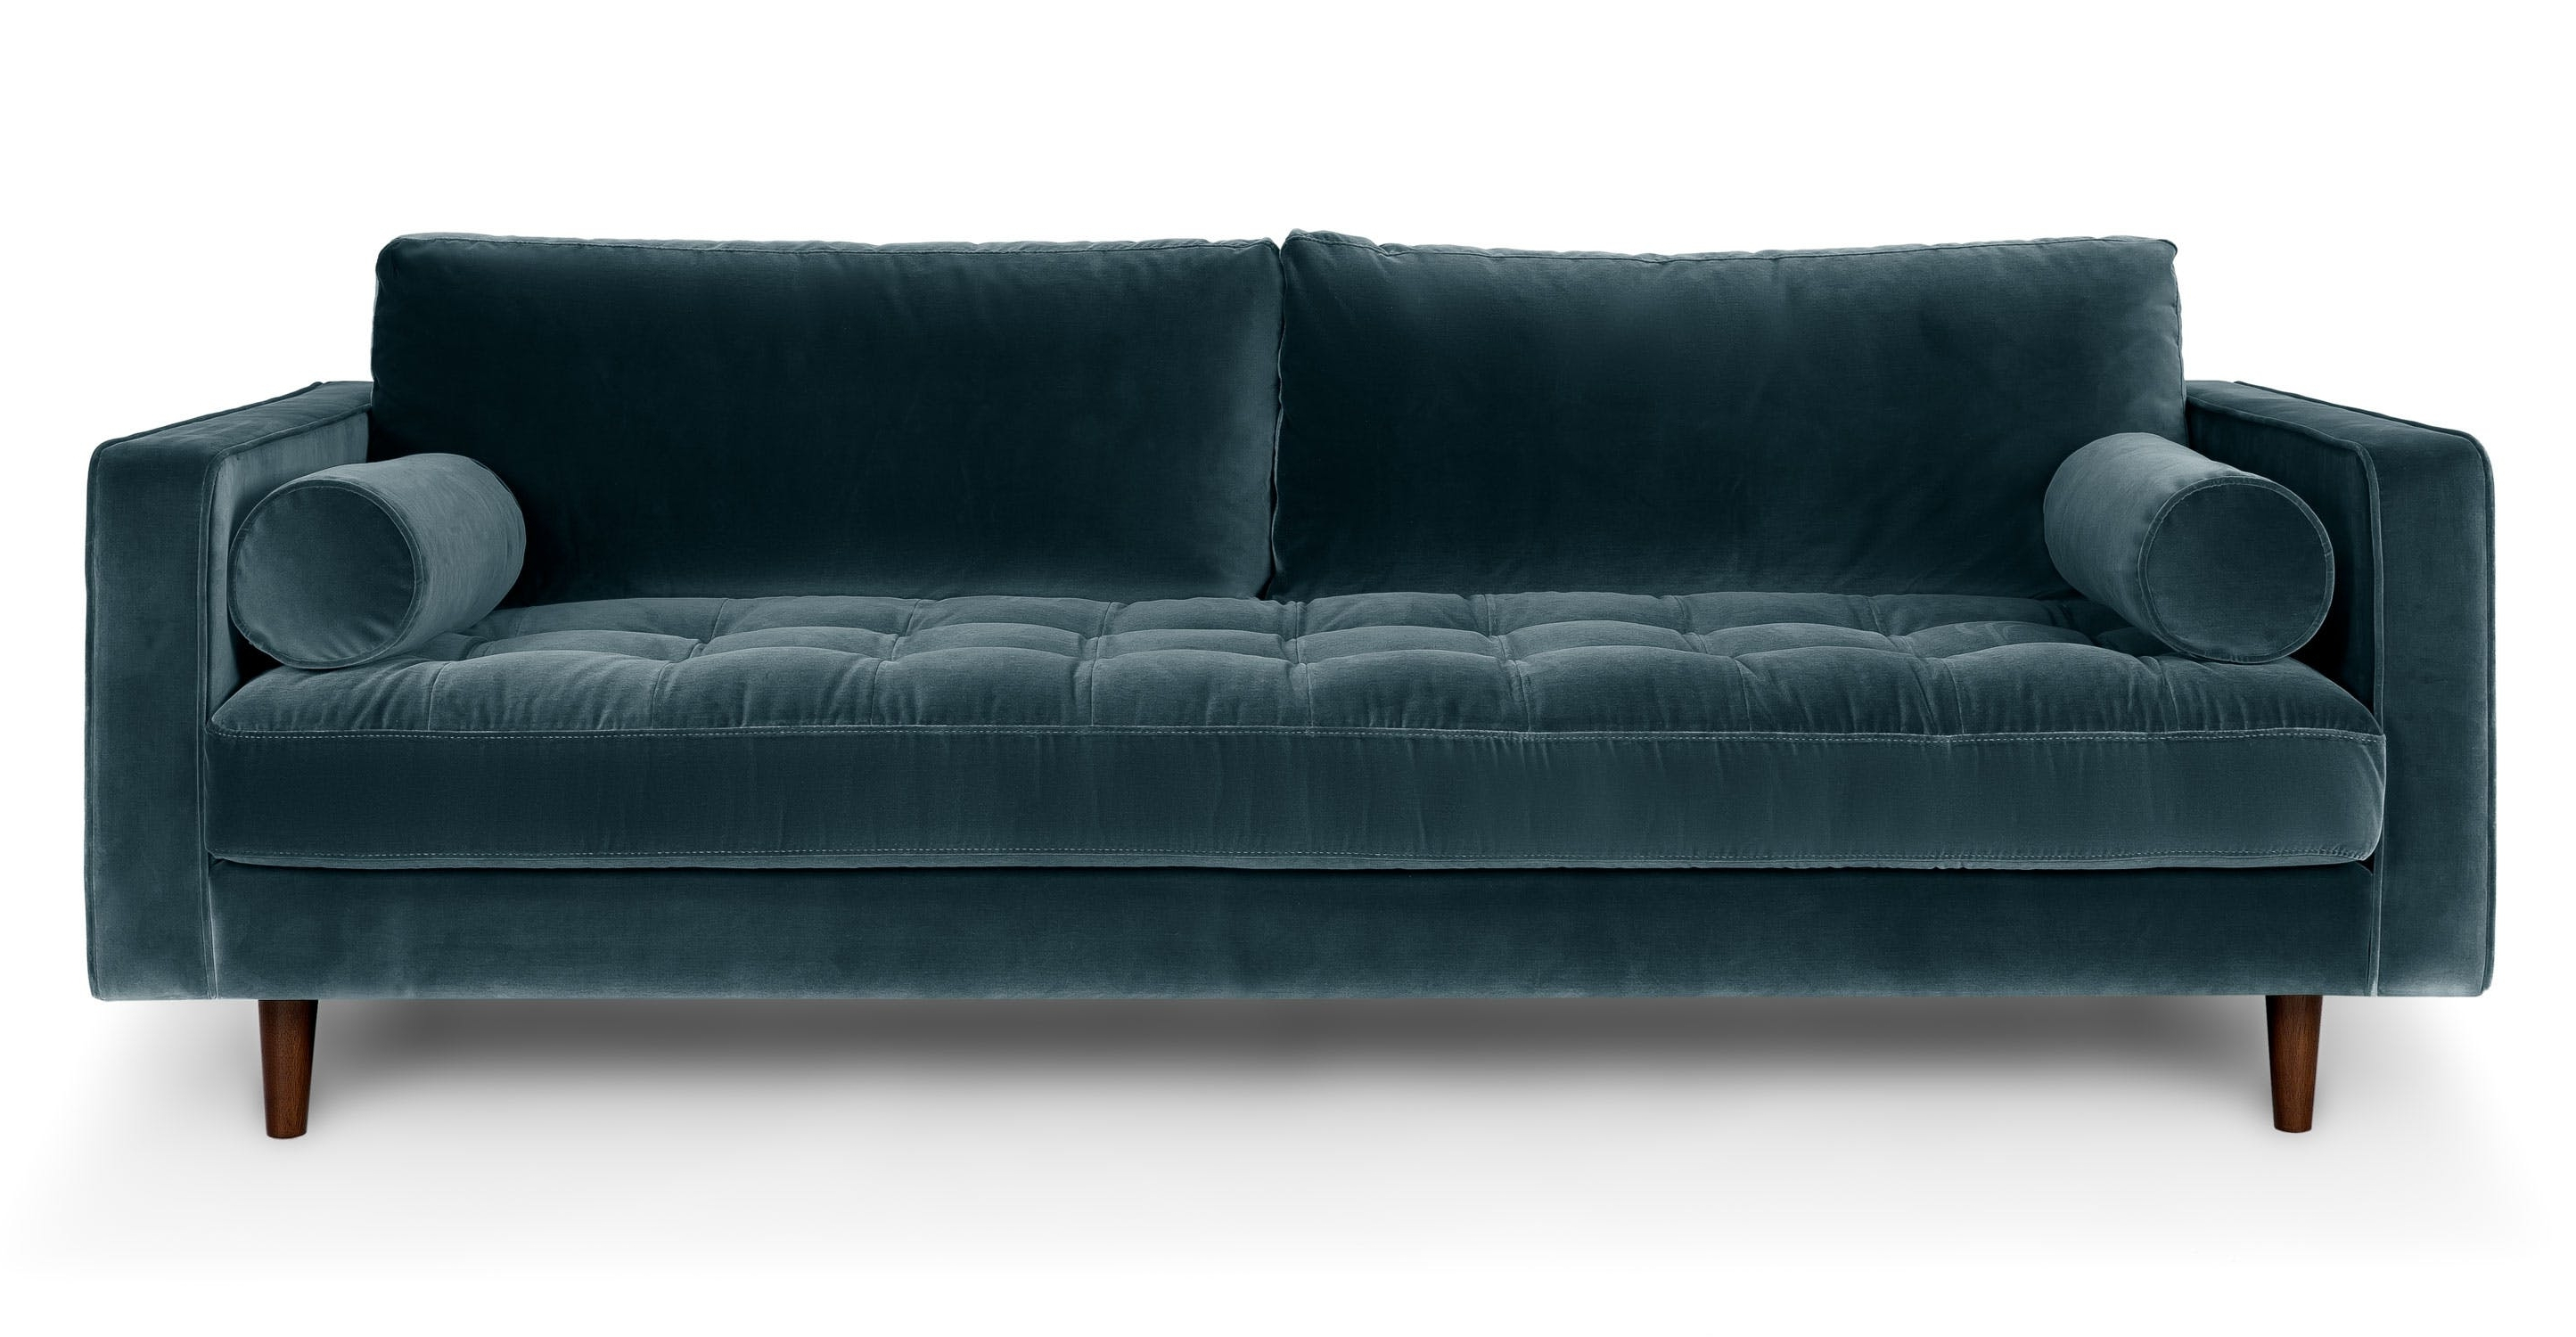 Comfortable Sofa With Regard To Comfortable Sofas And Chairs (View 3 of 20)